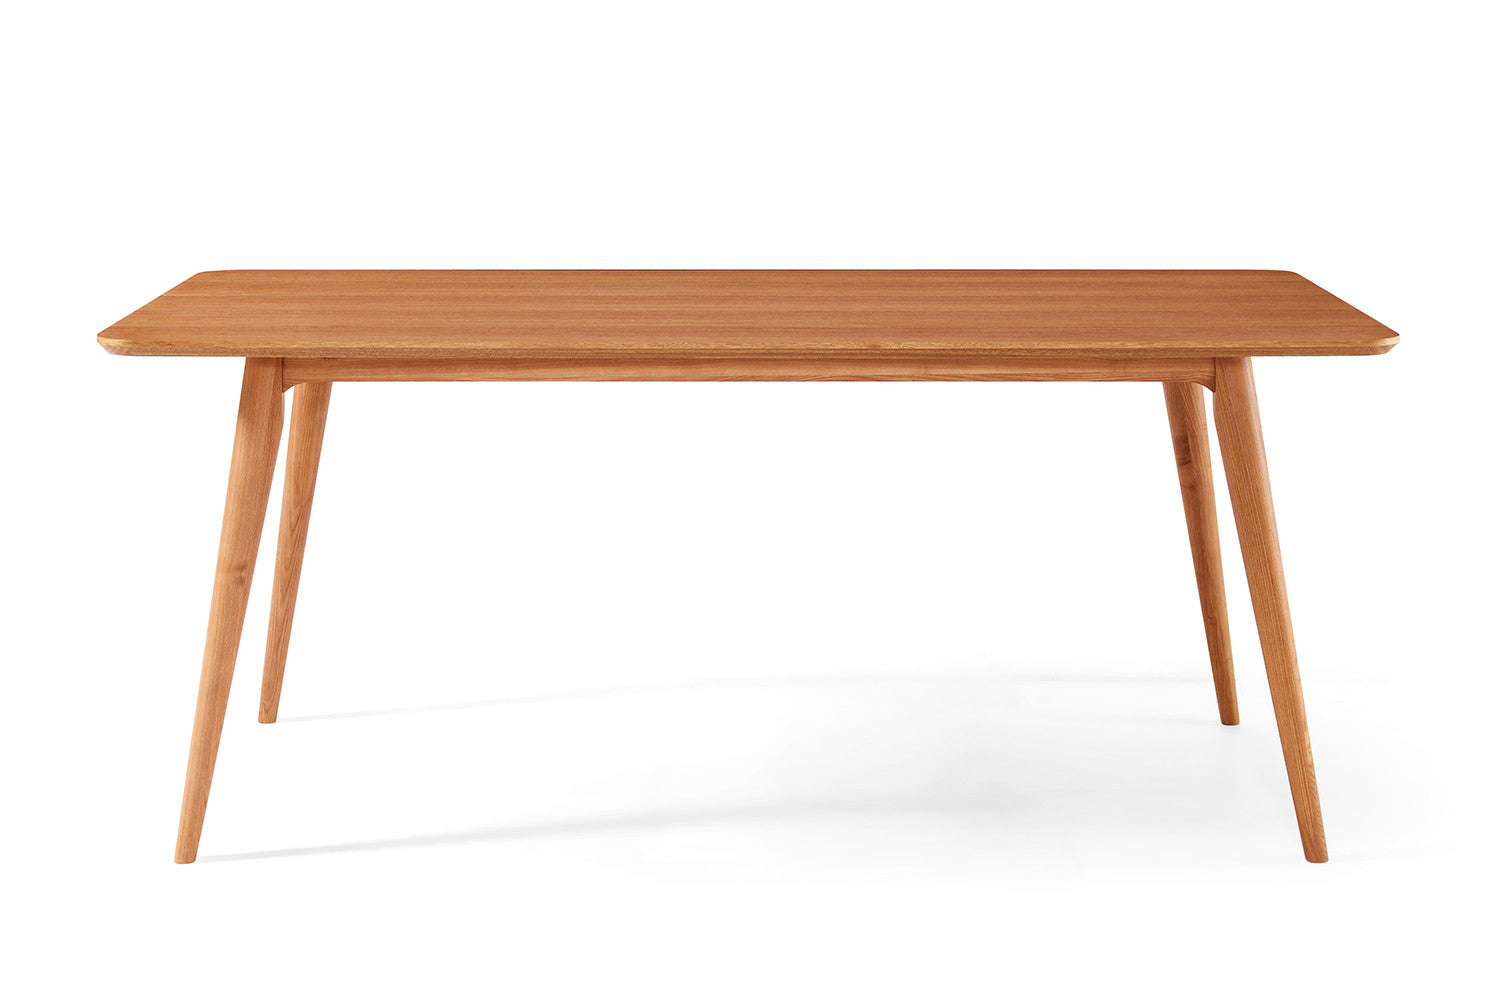 Table de salle manger design en bois julia dewarens for Table salle a manger design